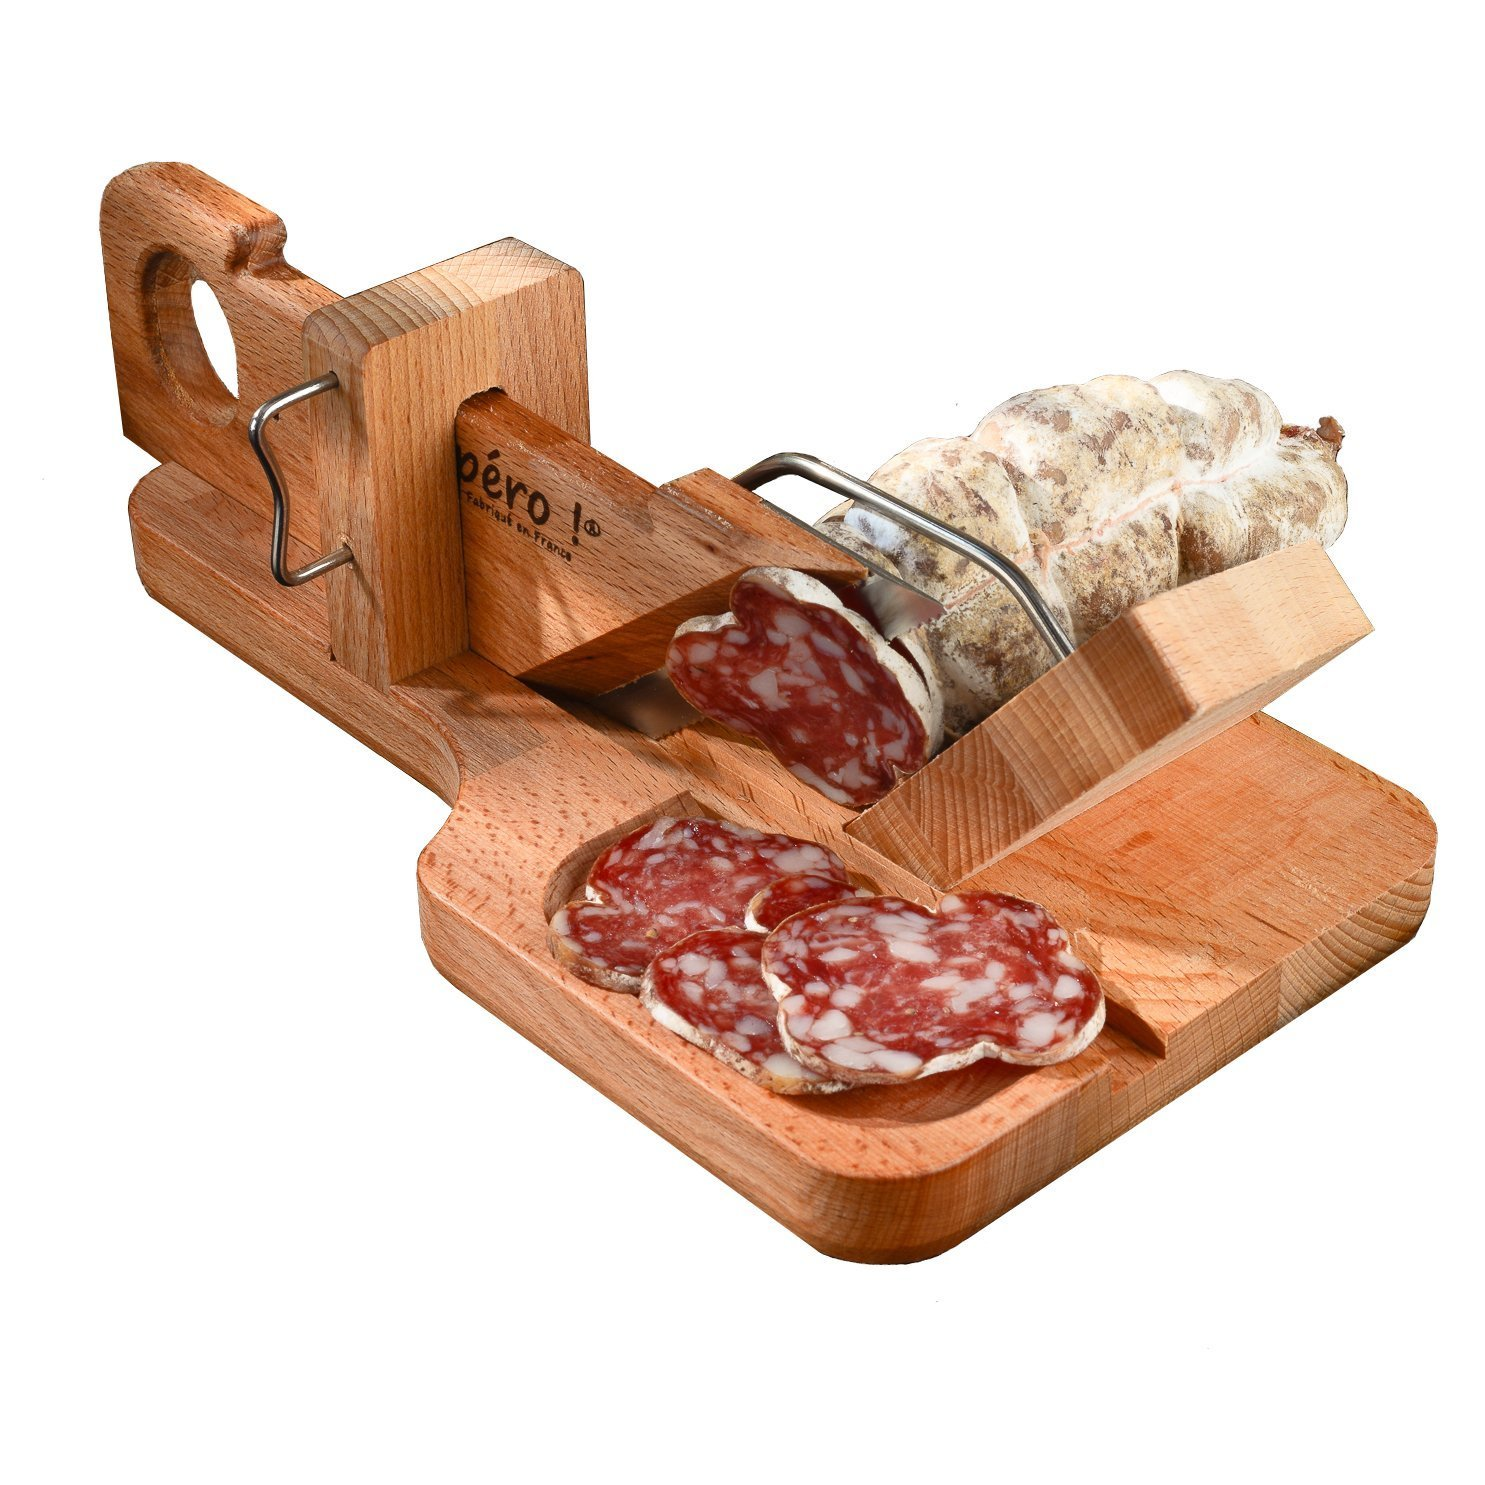 So Apéro - Guillotine à Saucisson - l'Originale - Fabrication 100% Française - L'authentique guillotine à saucisson conçue en Savoie product image